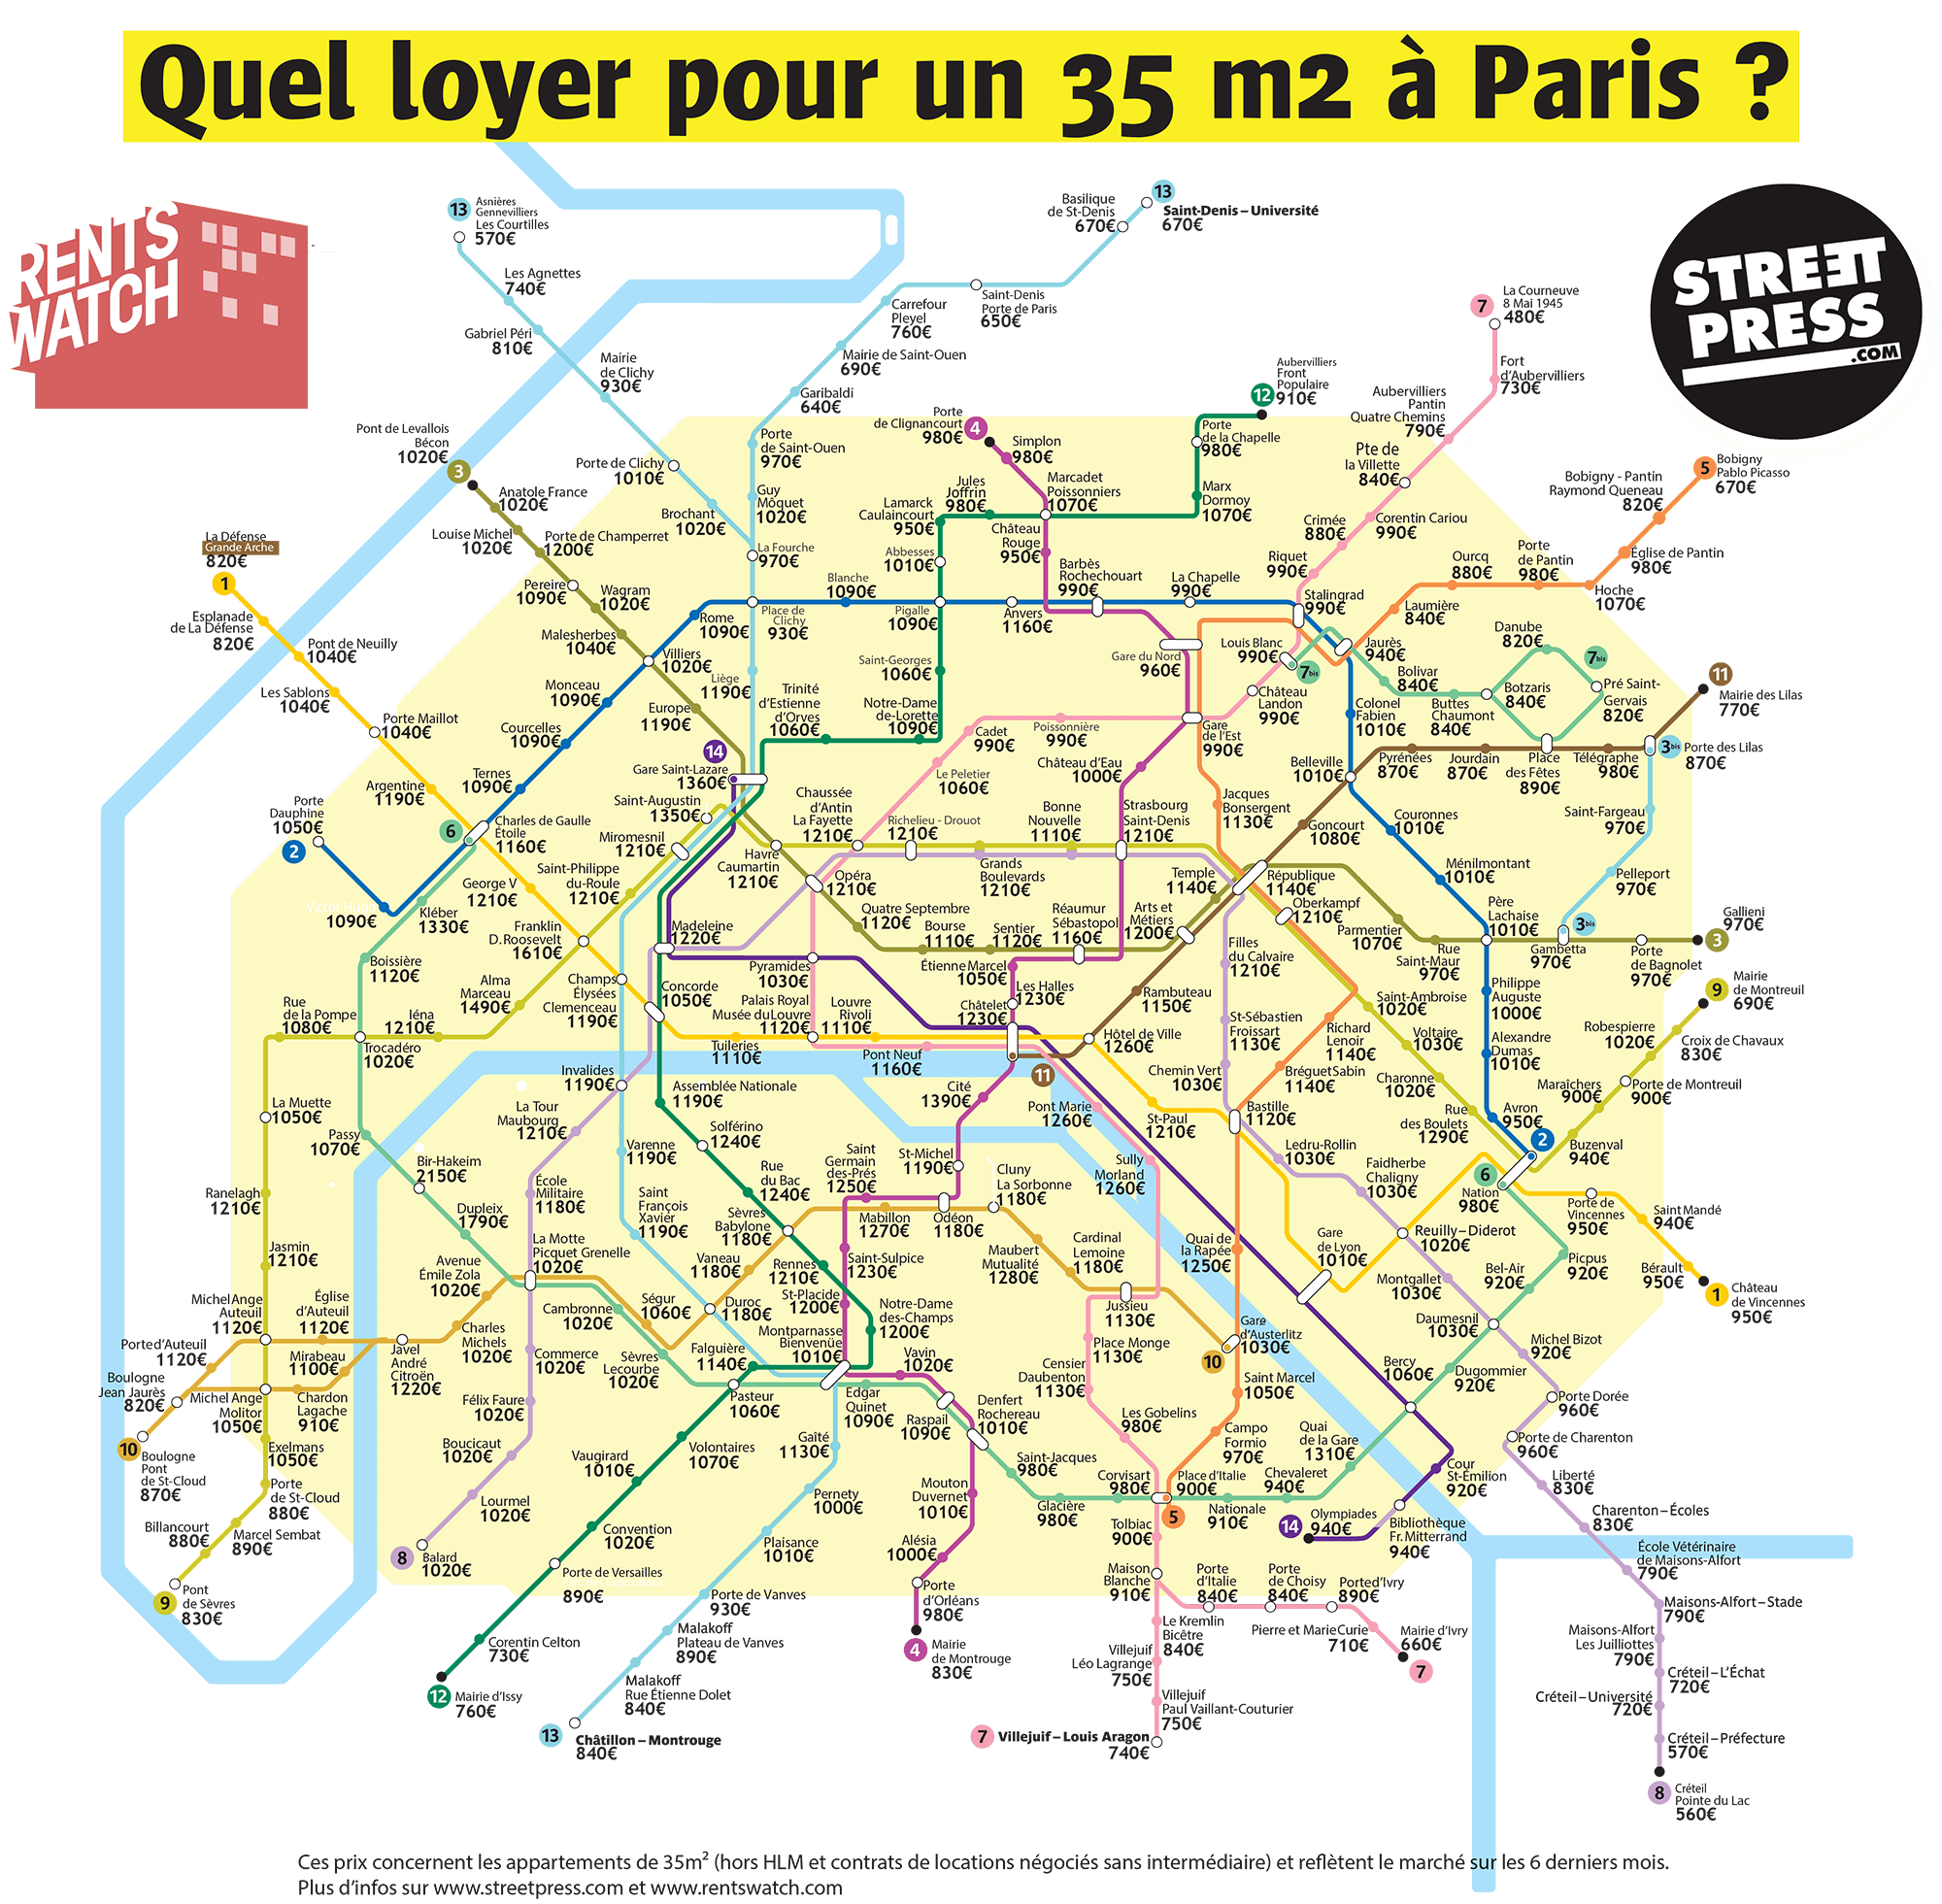 new map reveals paris flat pricesmetro station - the local